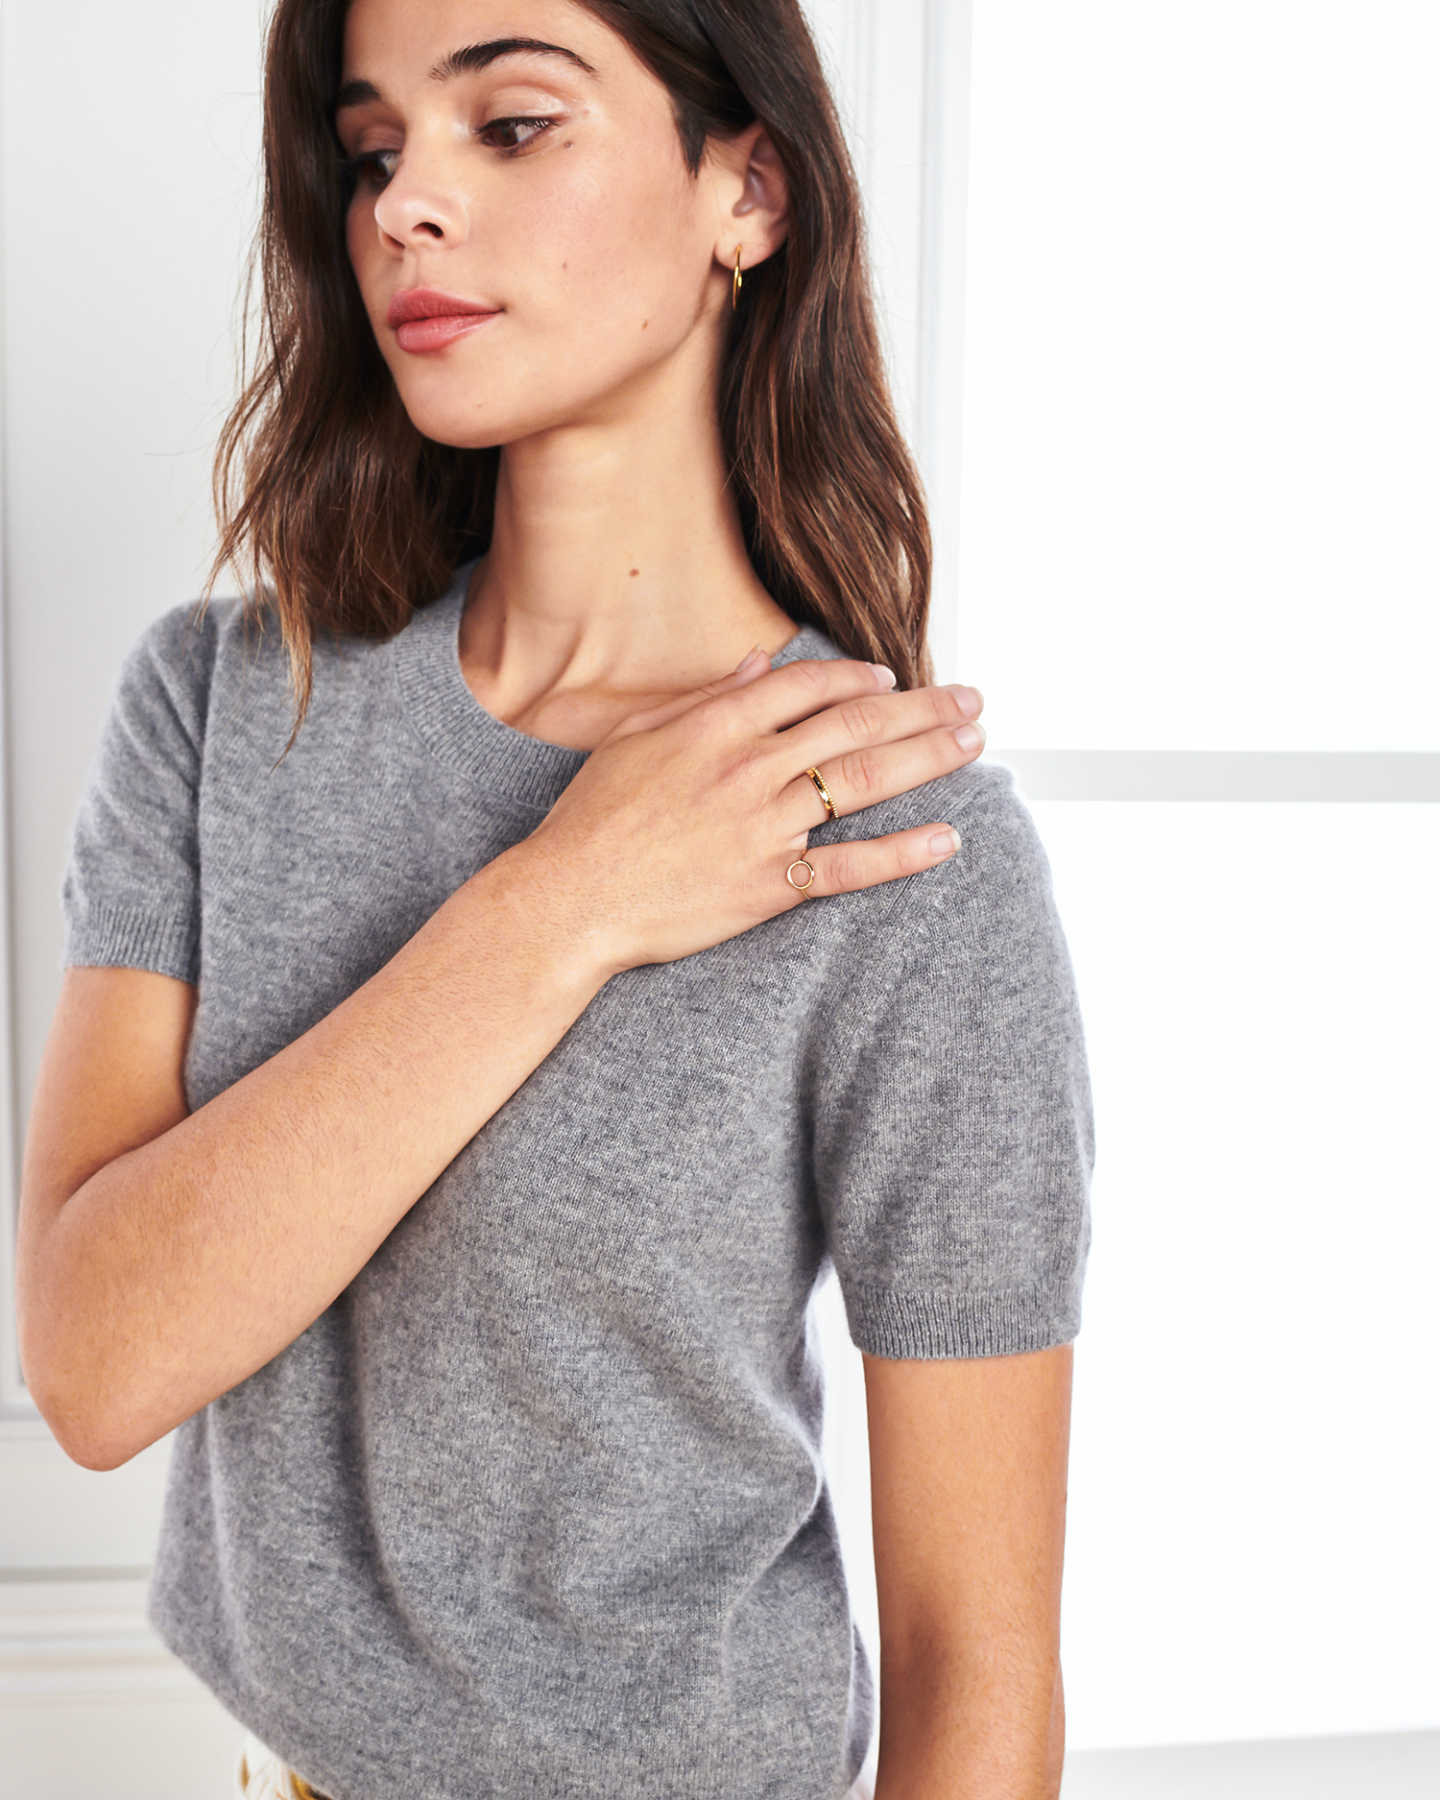 woman wearing grey cashmere tee and short sleeve cashmere sweater hand on shoulder